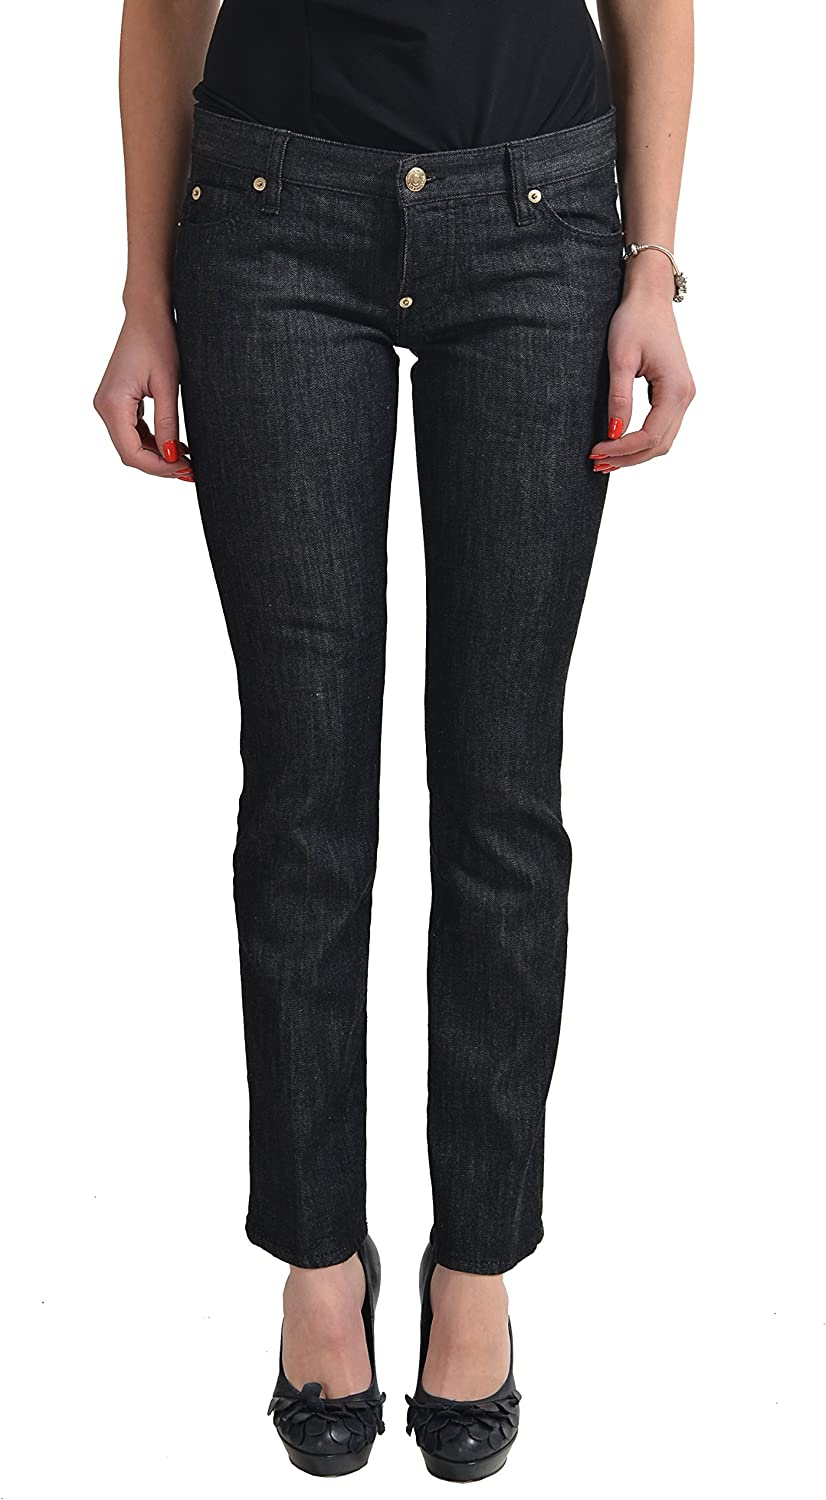 DSQUARED2  Trombetta Jean Dark Wash Slim Fit Women's Jeans US 4 IT 40